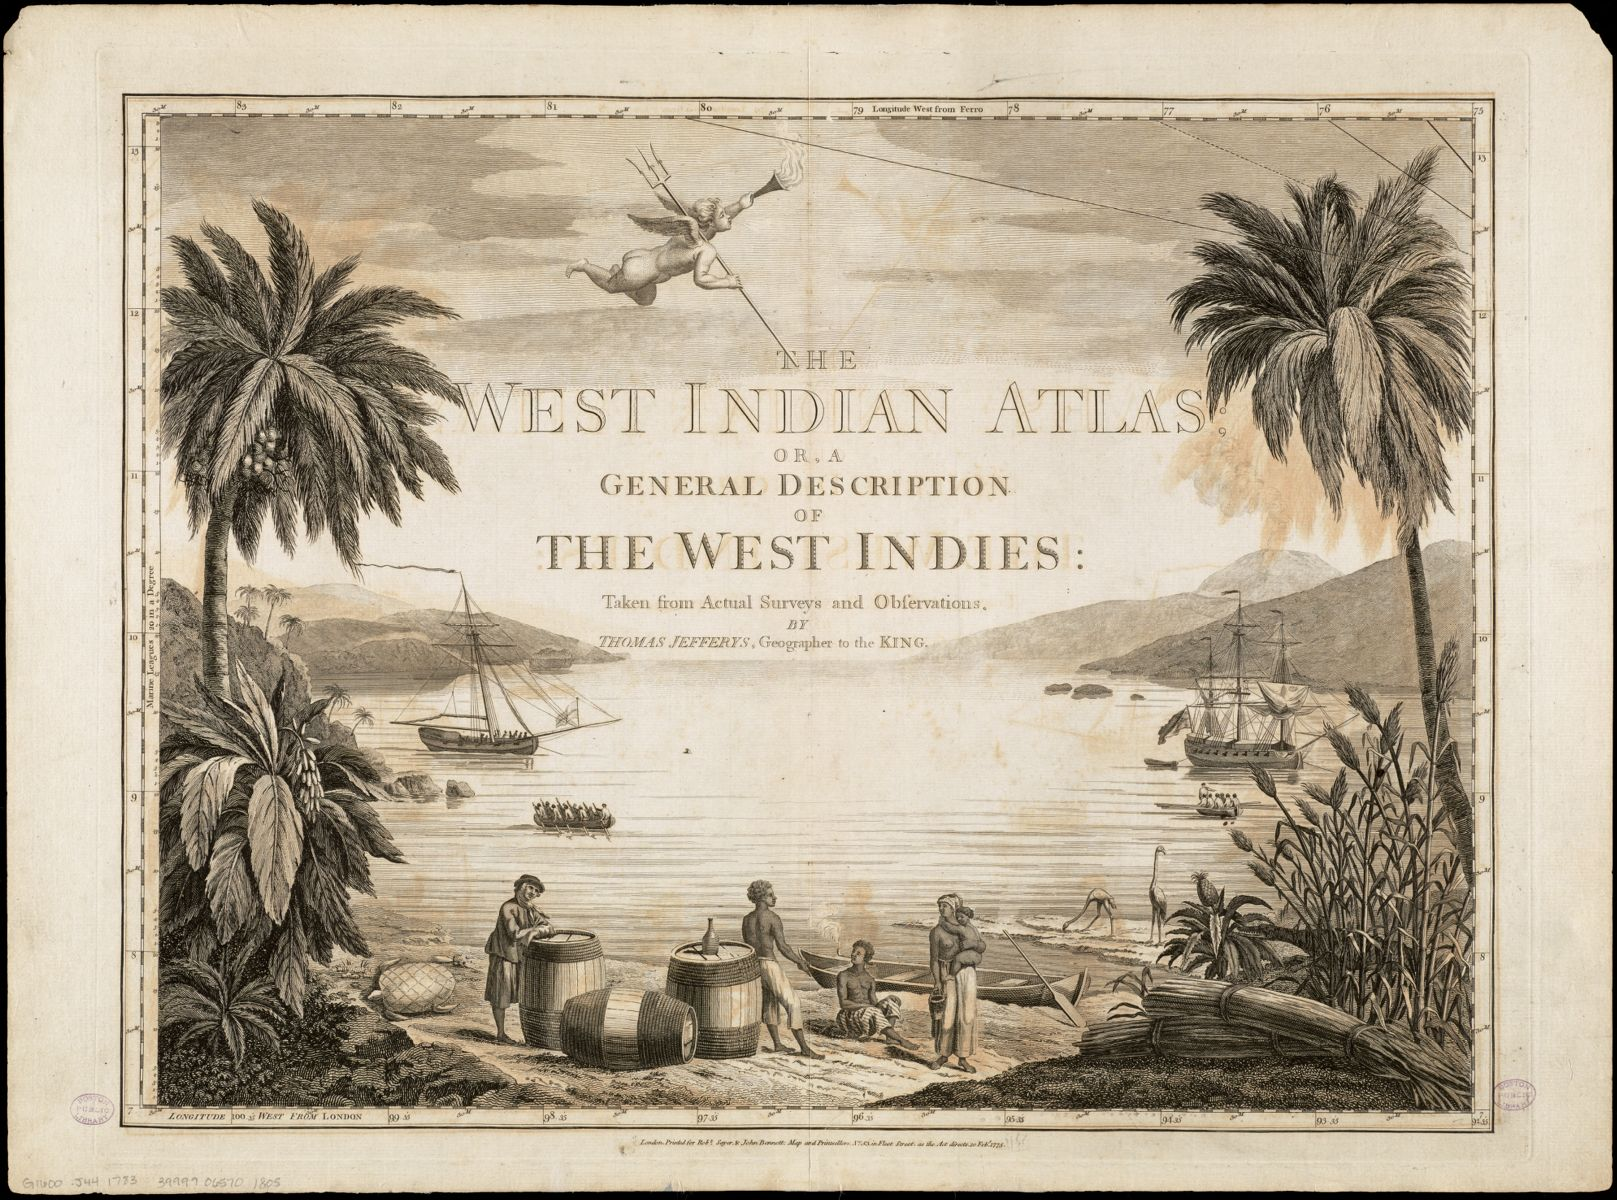 This frontispiece from an atlas of the Caribbean shows enslaved Black people standing among barrels that likely contain molasses or rum, and a bundle of sugarcane off to the right. All the subjects of the engraving were imports or exports in the triangular trade. This includes the people, who were trafficked against their will.